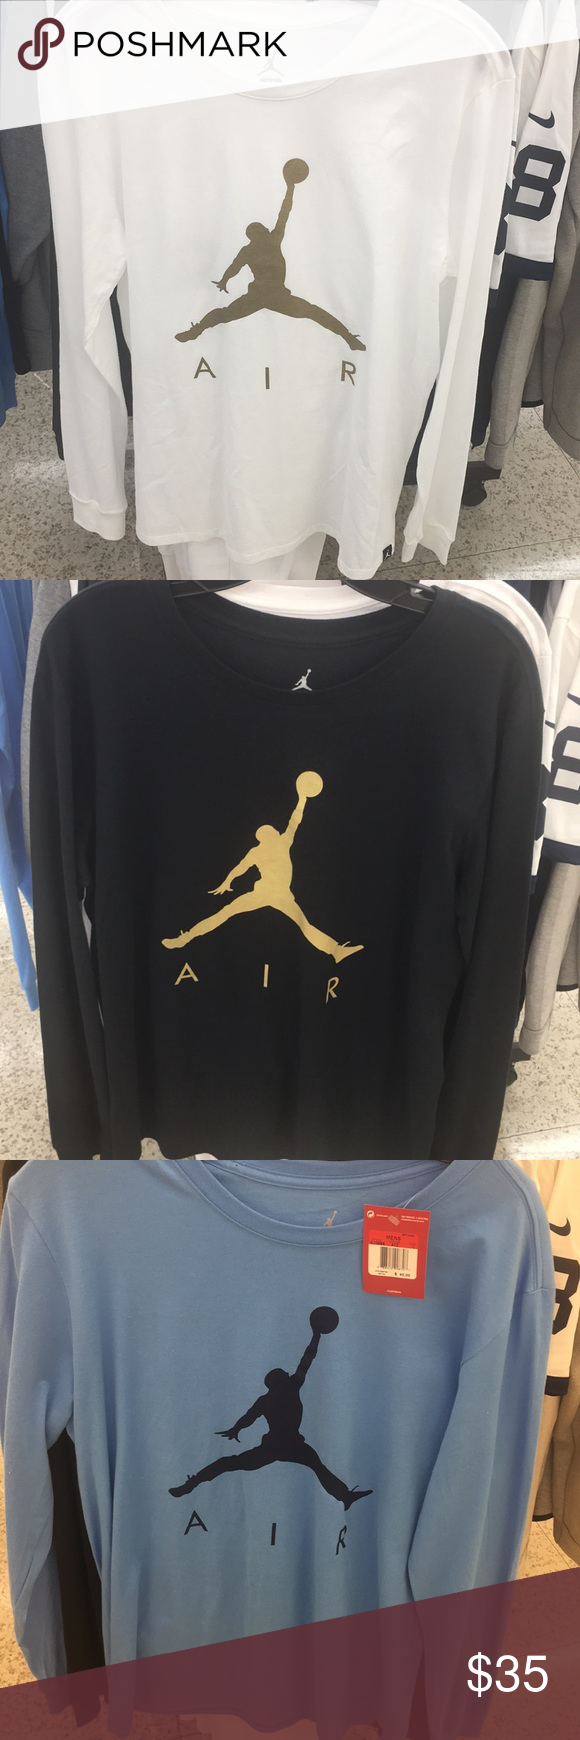 970375bac5f3 Air Jordan Long Sleeve Black Blue White Gold Shirt CHOOSE 1 or Ask for  Bundle Air